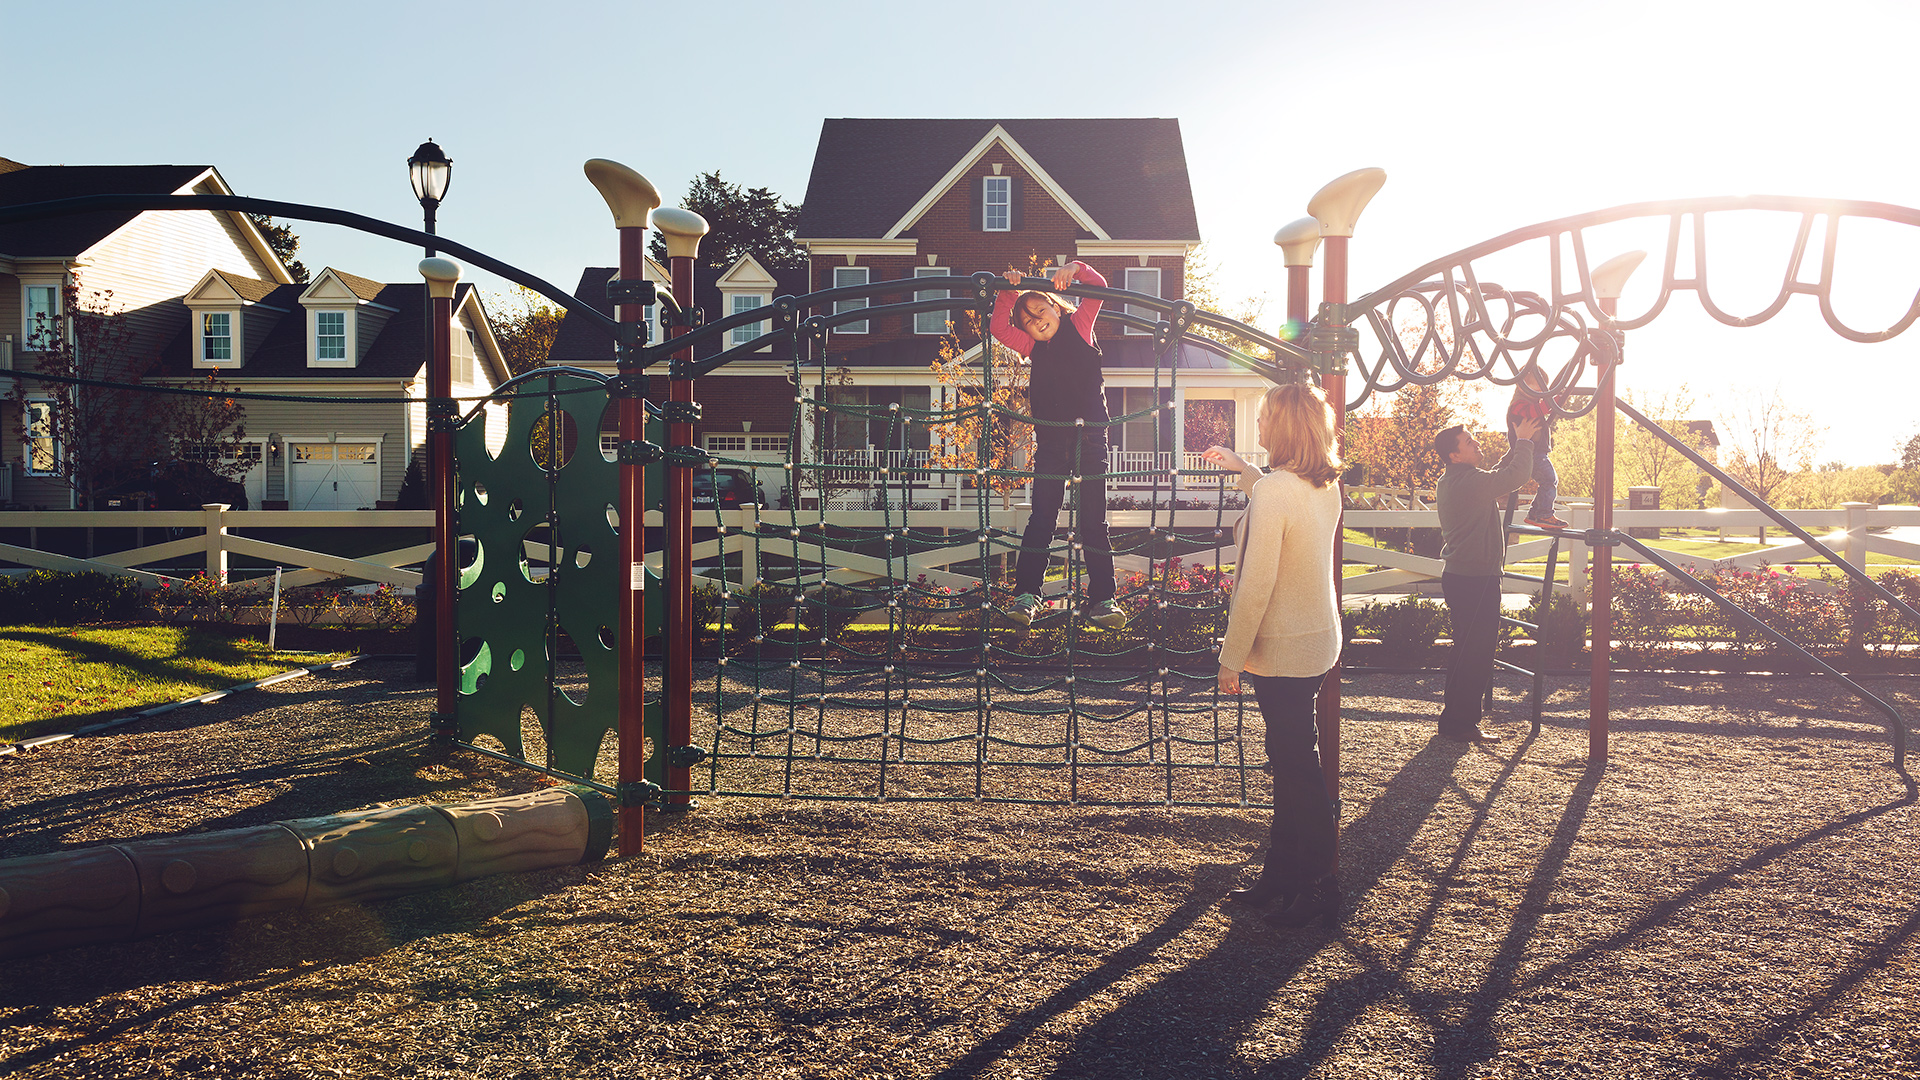 Tot lots and parks provide a fun place to play